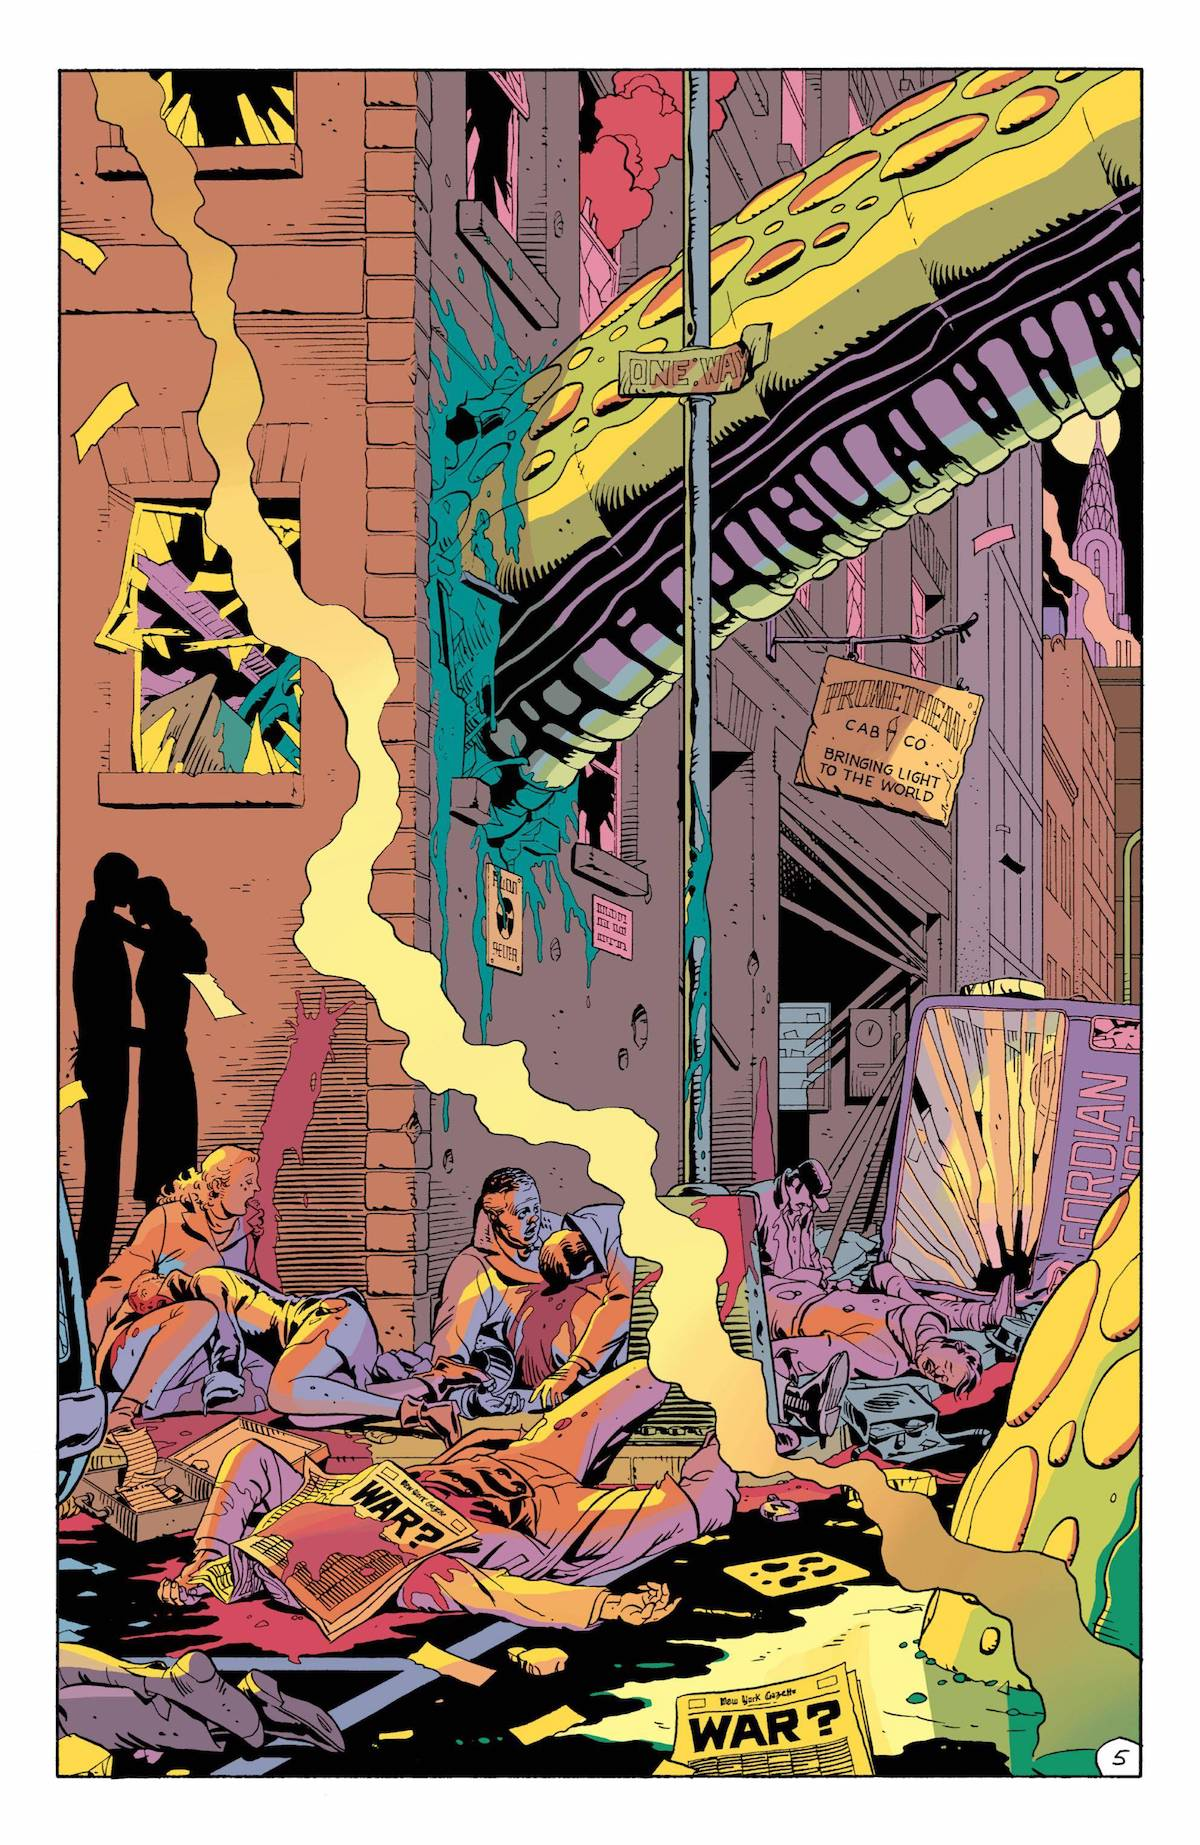 Page from Watchmen comic